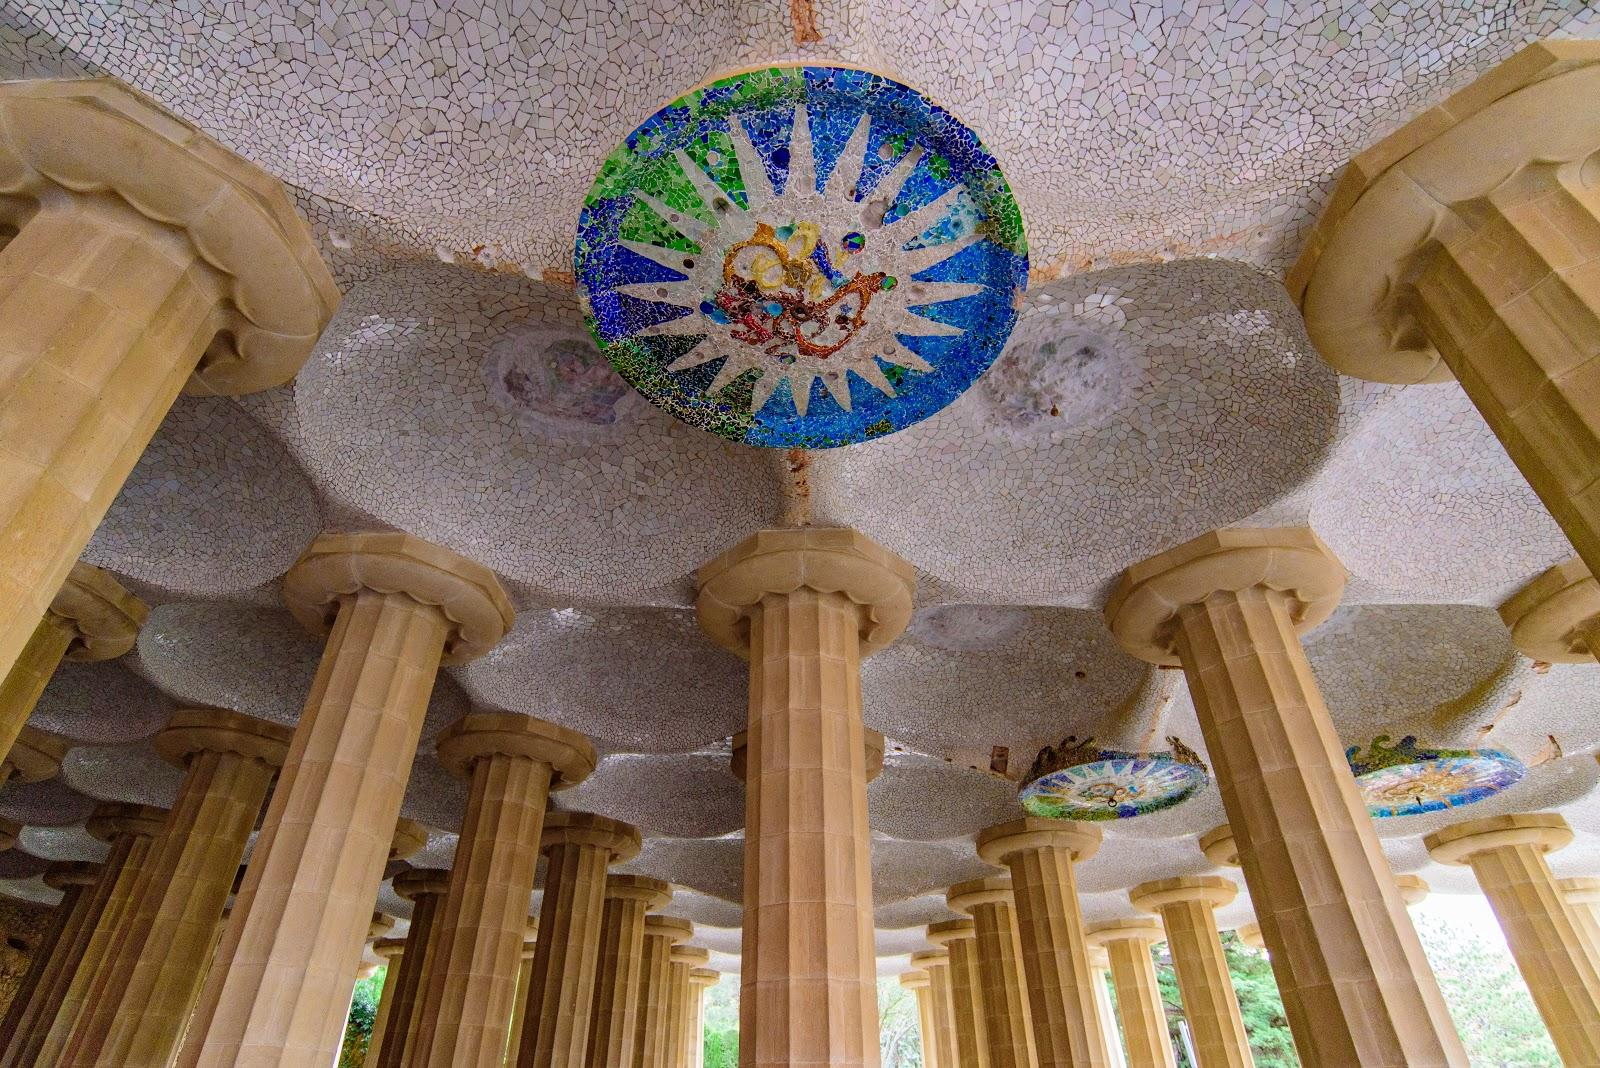 A view of the ceiling of the Hypostyle Room marketplace in Park Guell.